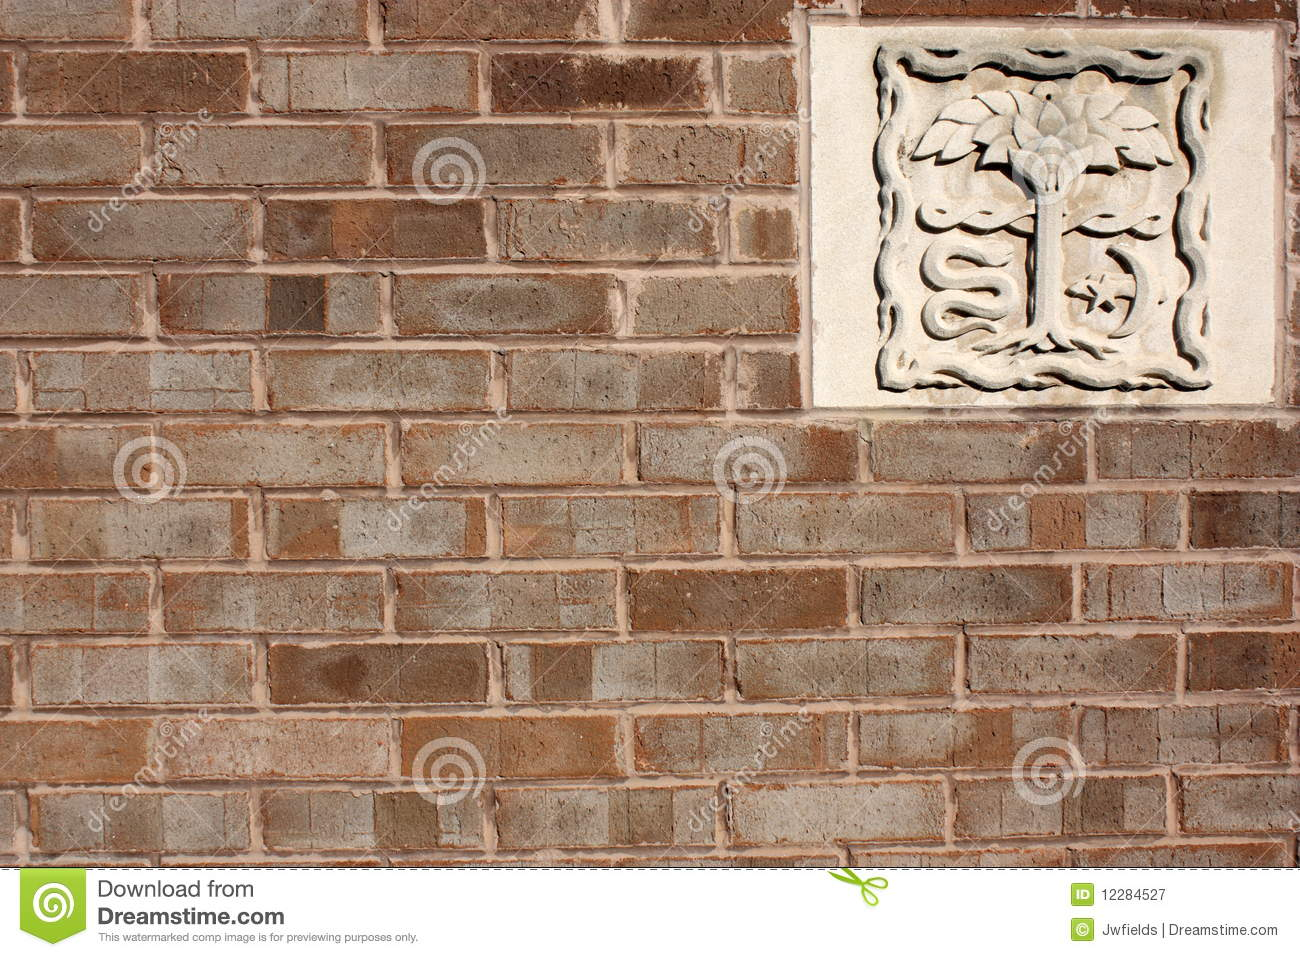 Brick wall with stone carving royalty free stock